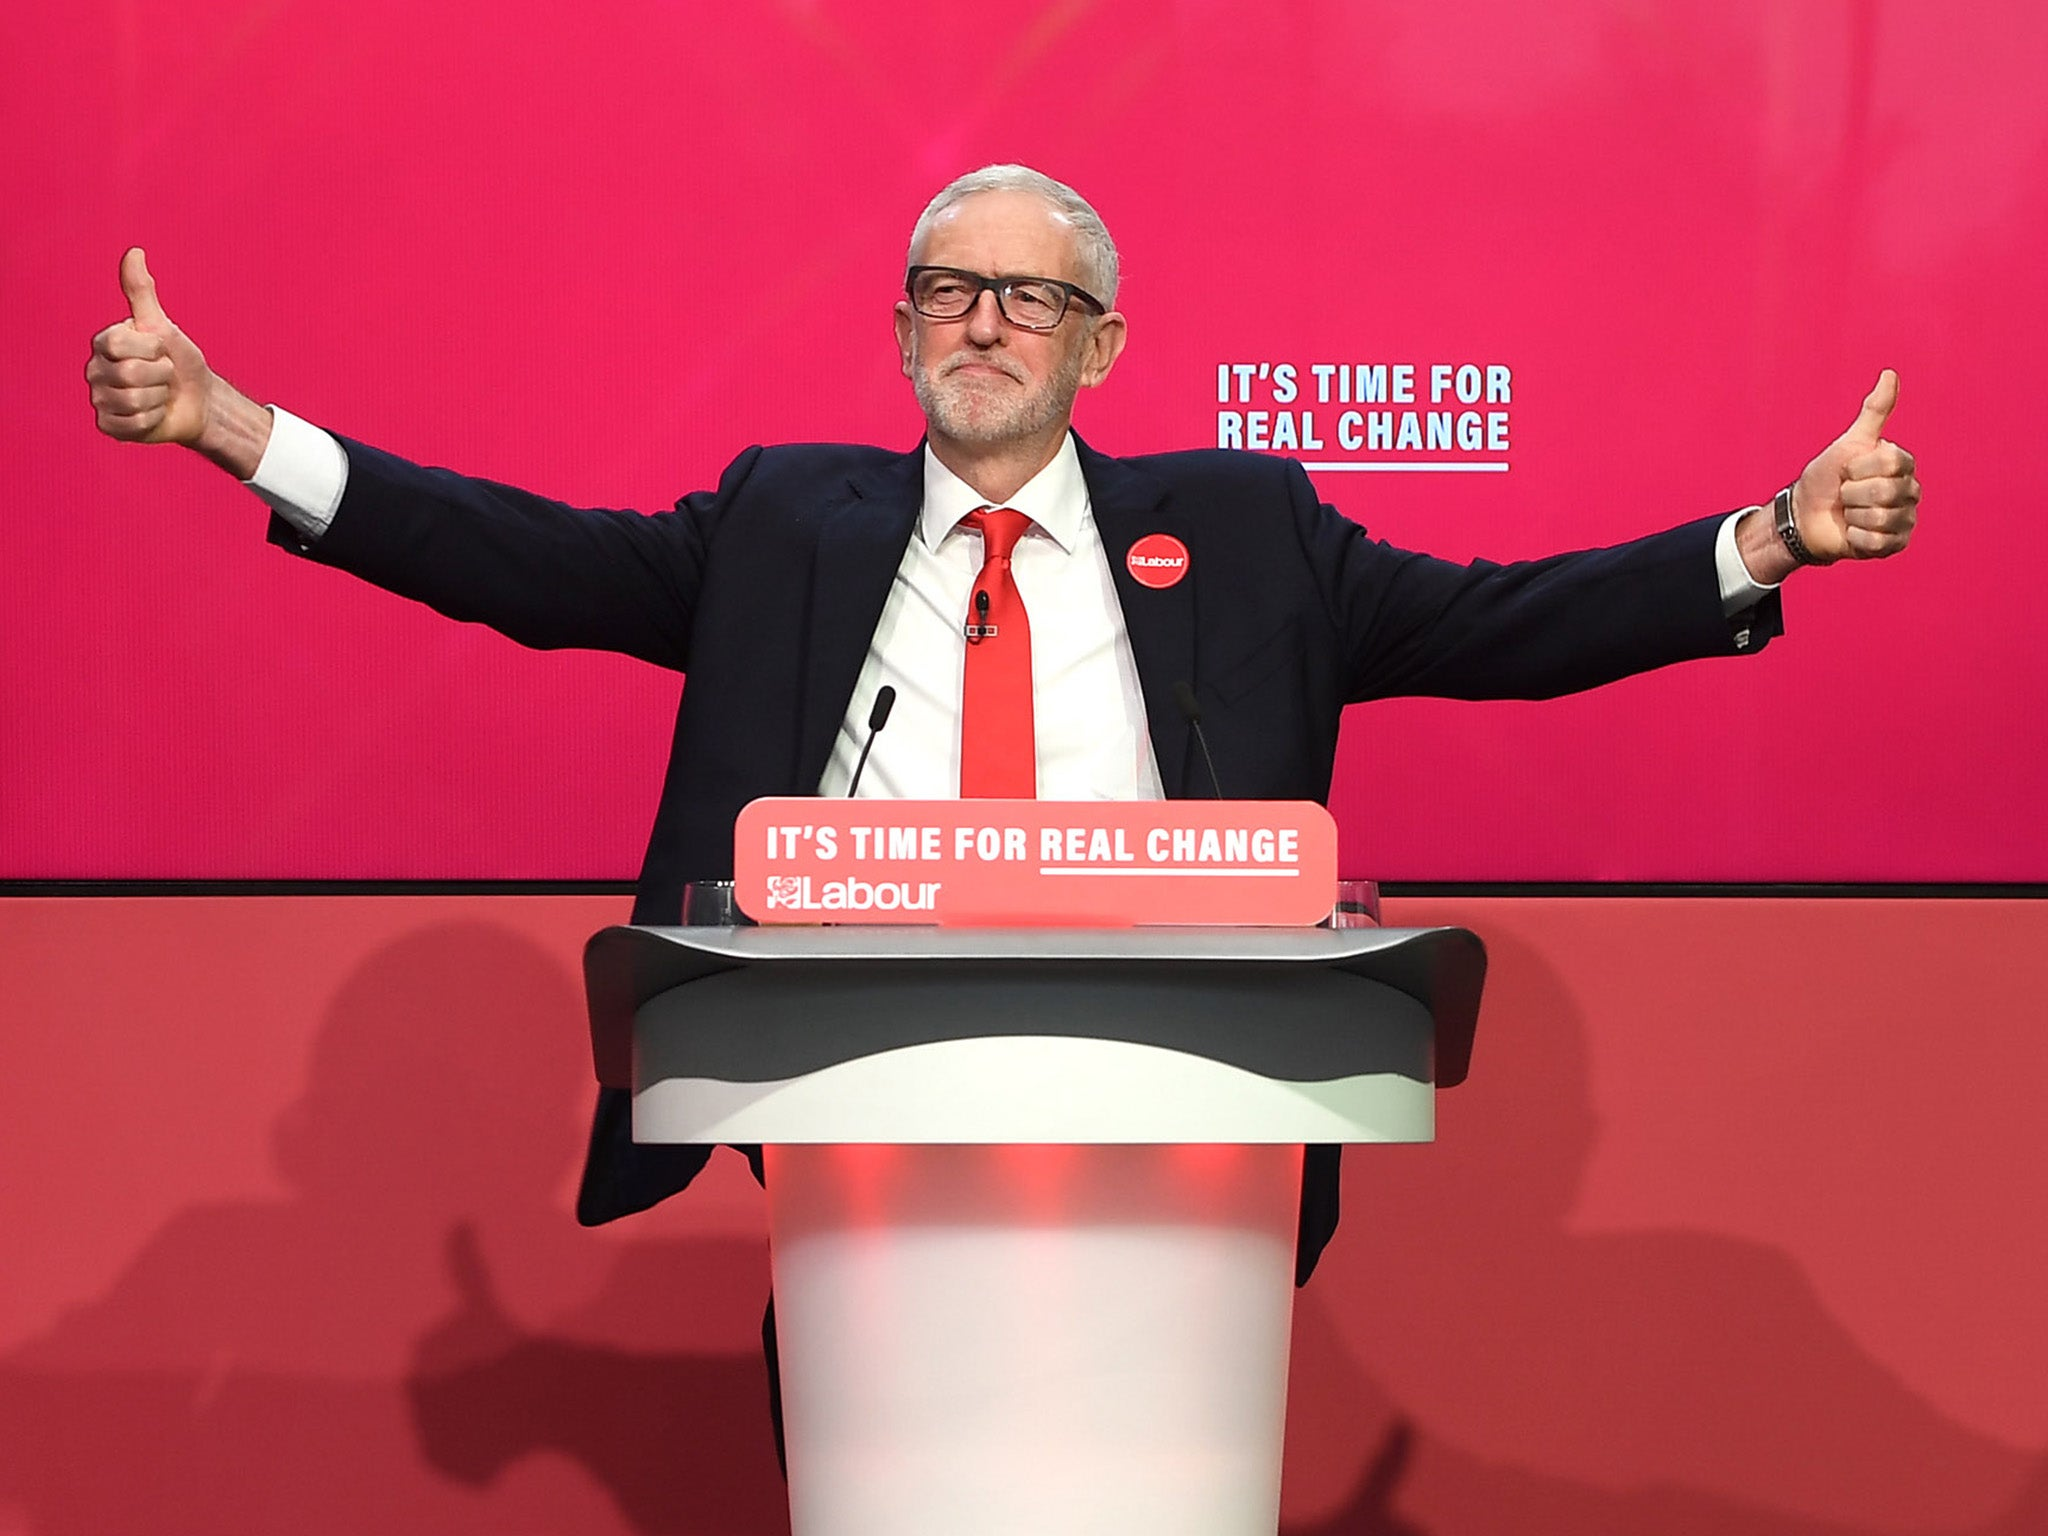 General election: Final Say referendum will be legally-binding, says Corbyn